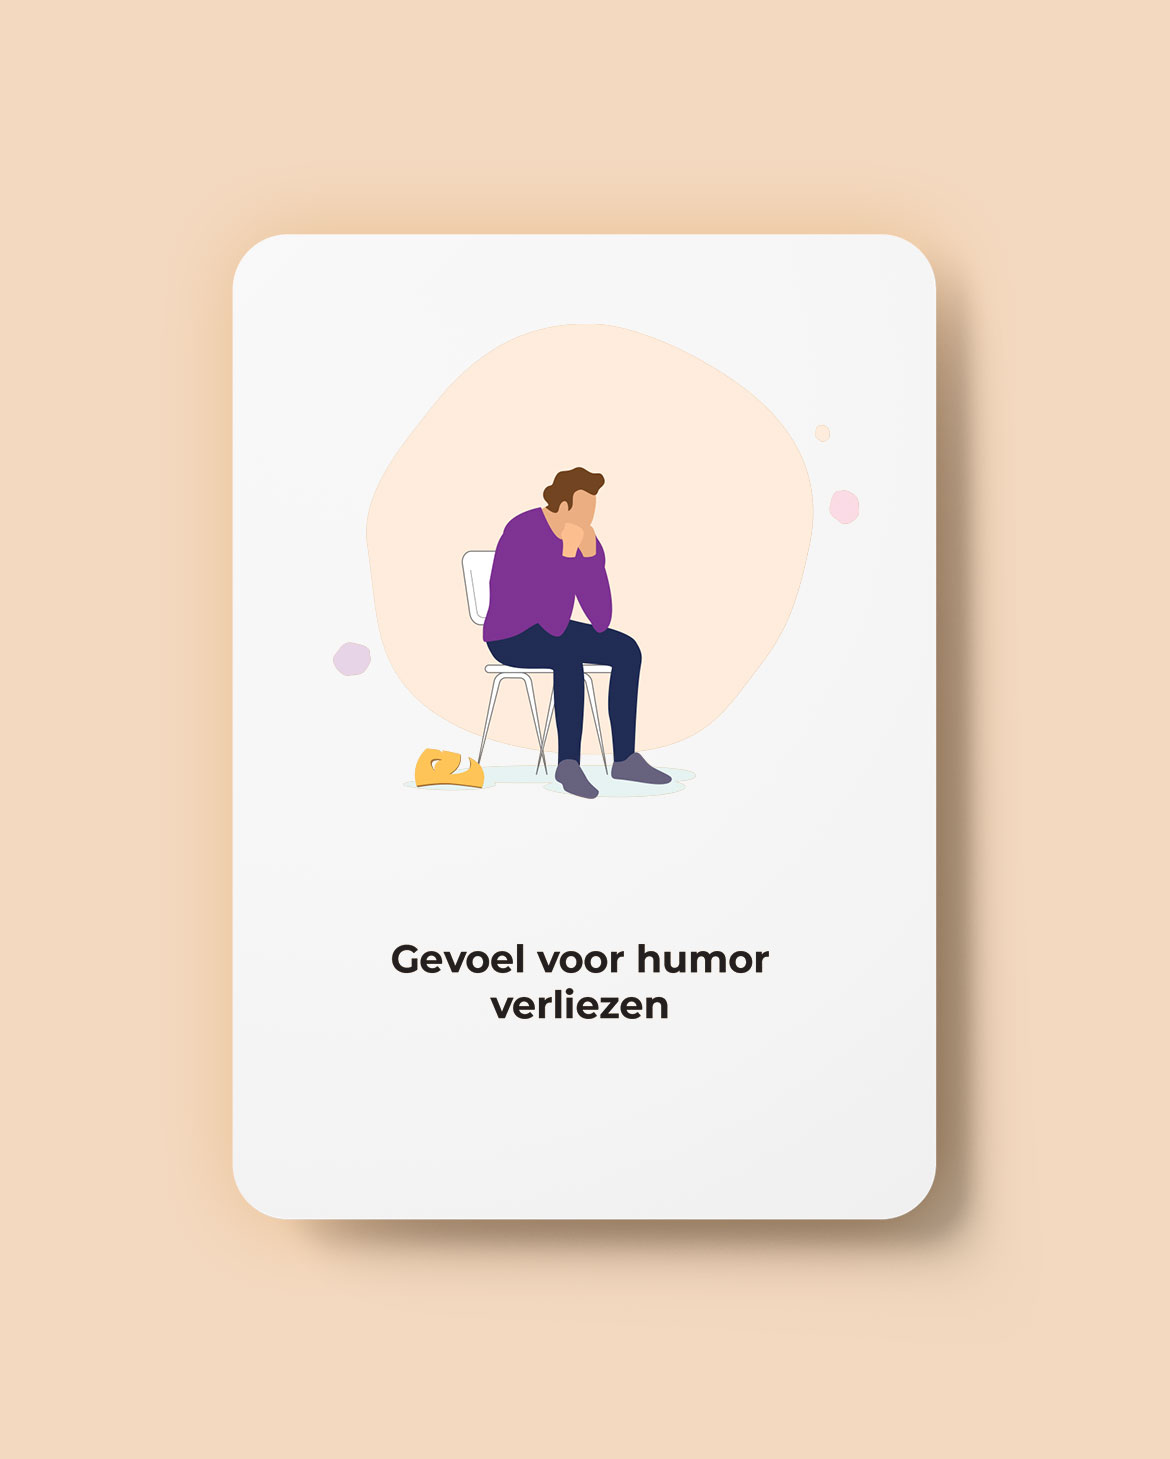 Playing card with an illustration of a guy sitting on a chair